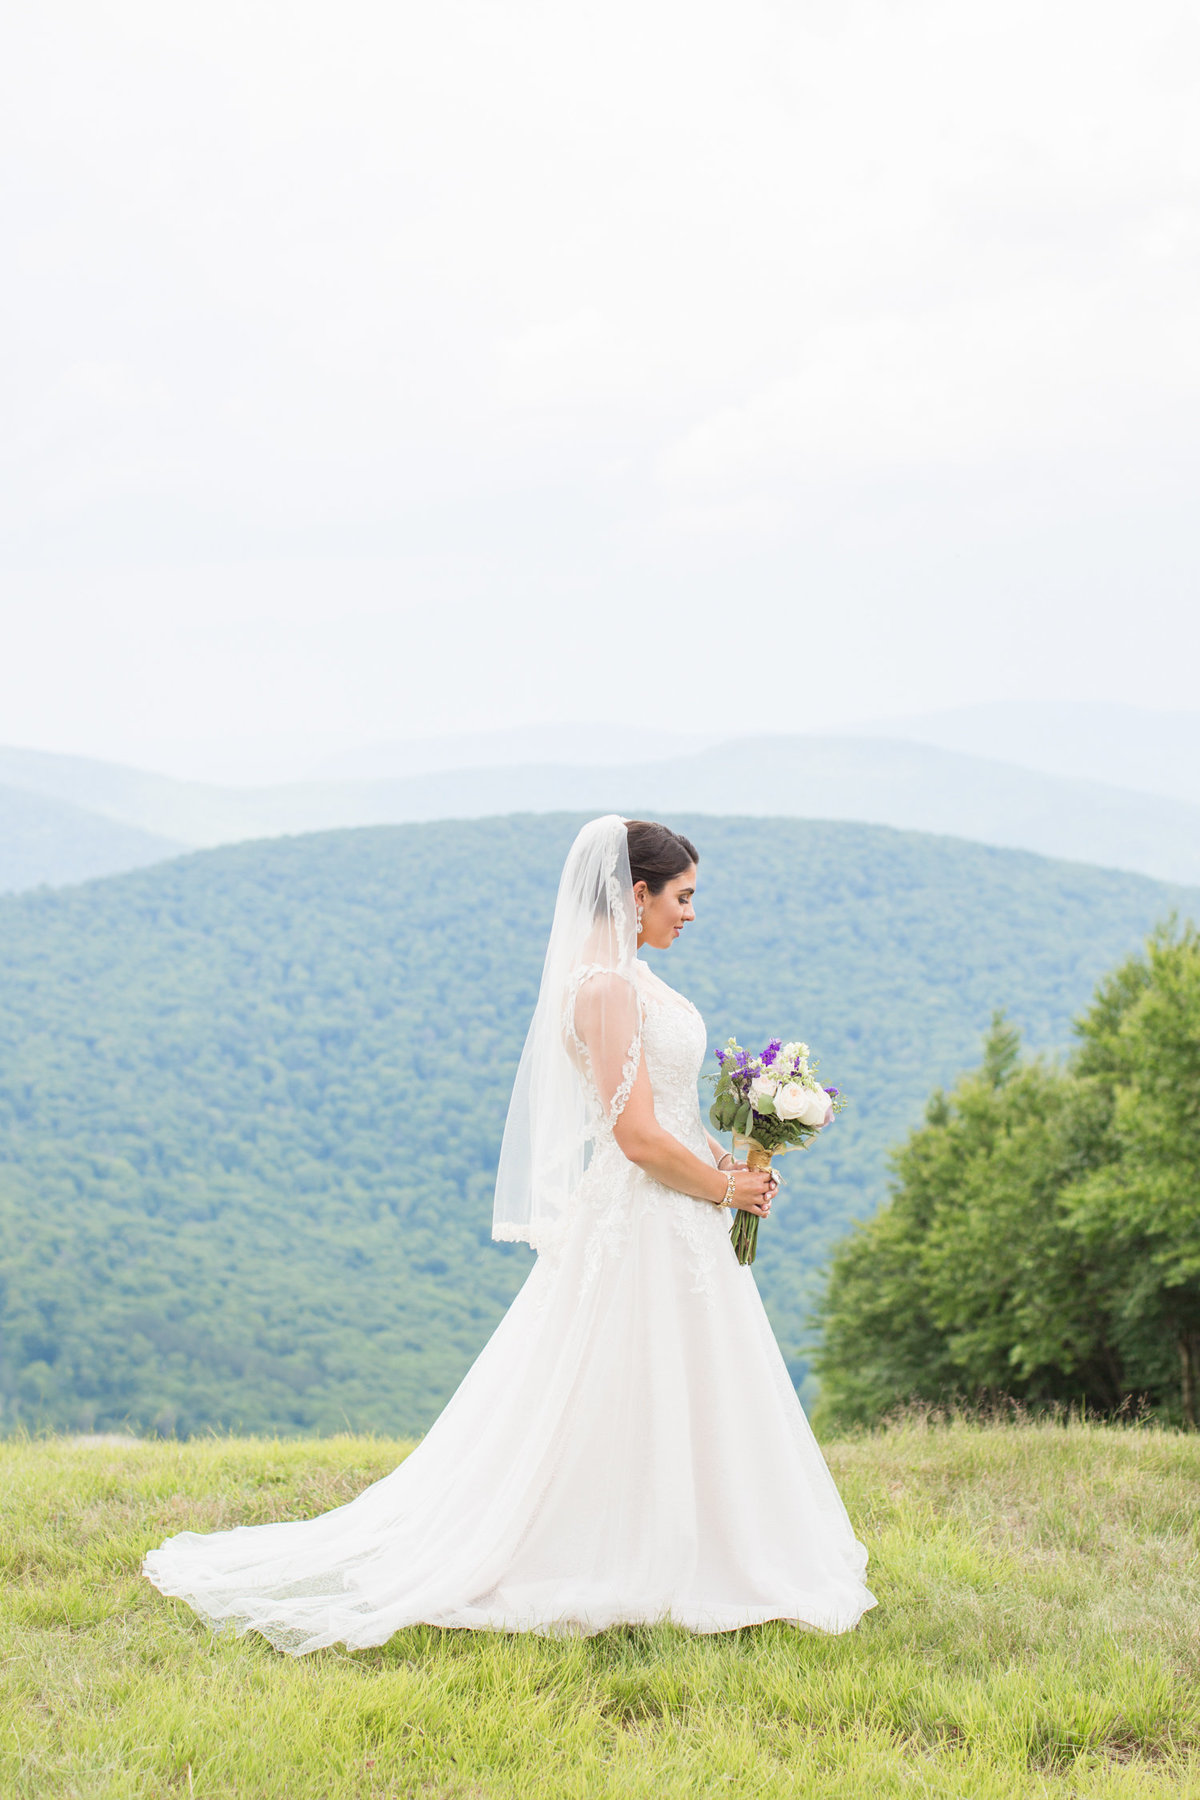 Laura-Klacik-Photography-Natural-Wedding-Photos-54